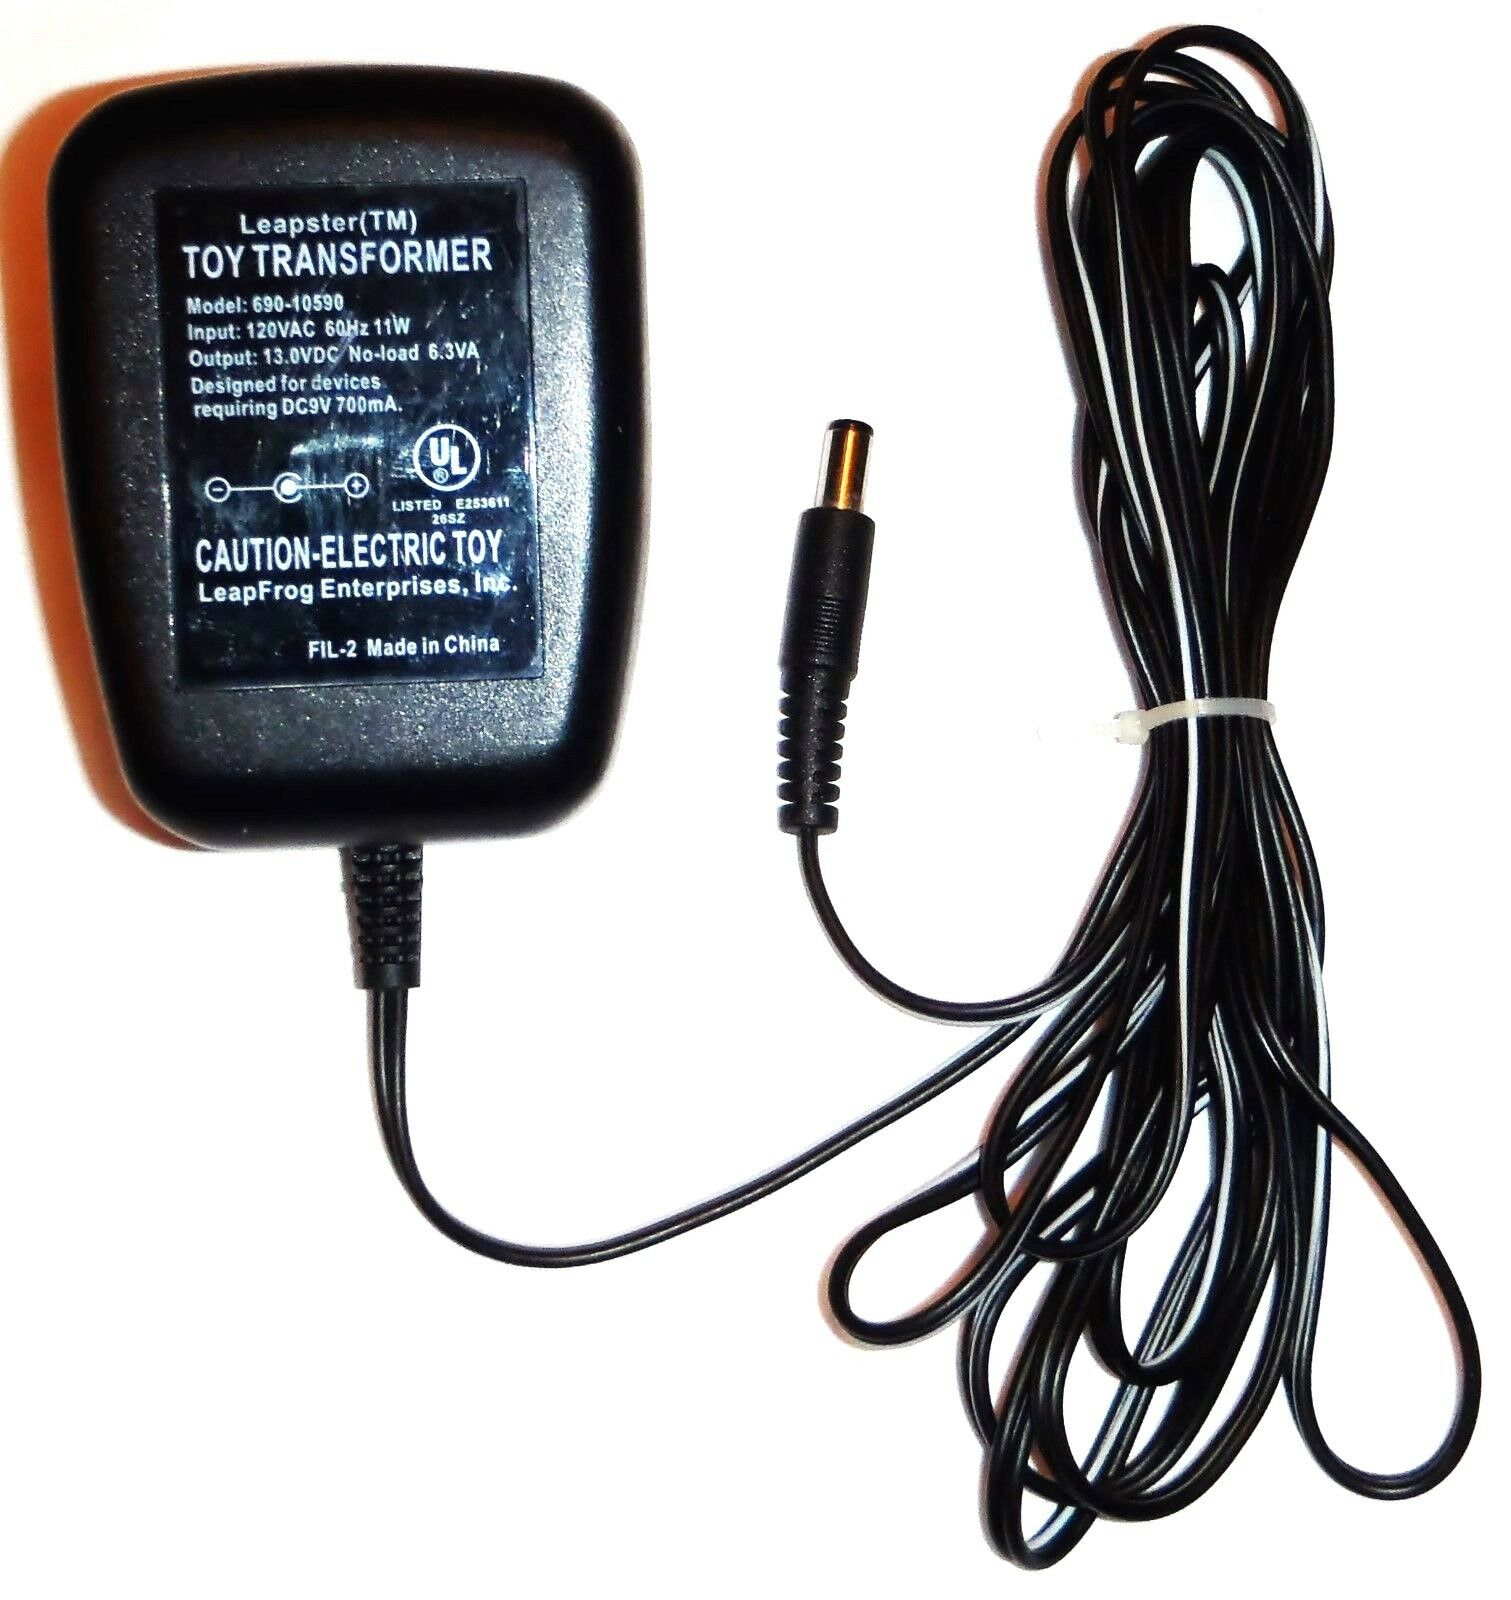 Leapster 690-10590 Toy Transformer 13v AC/DC Power Supply Battery Charger FIL-2